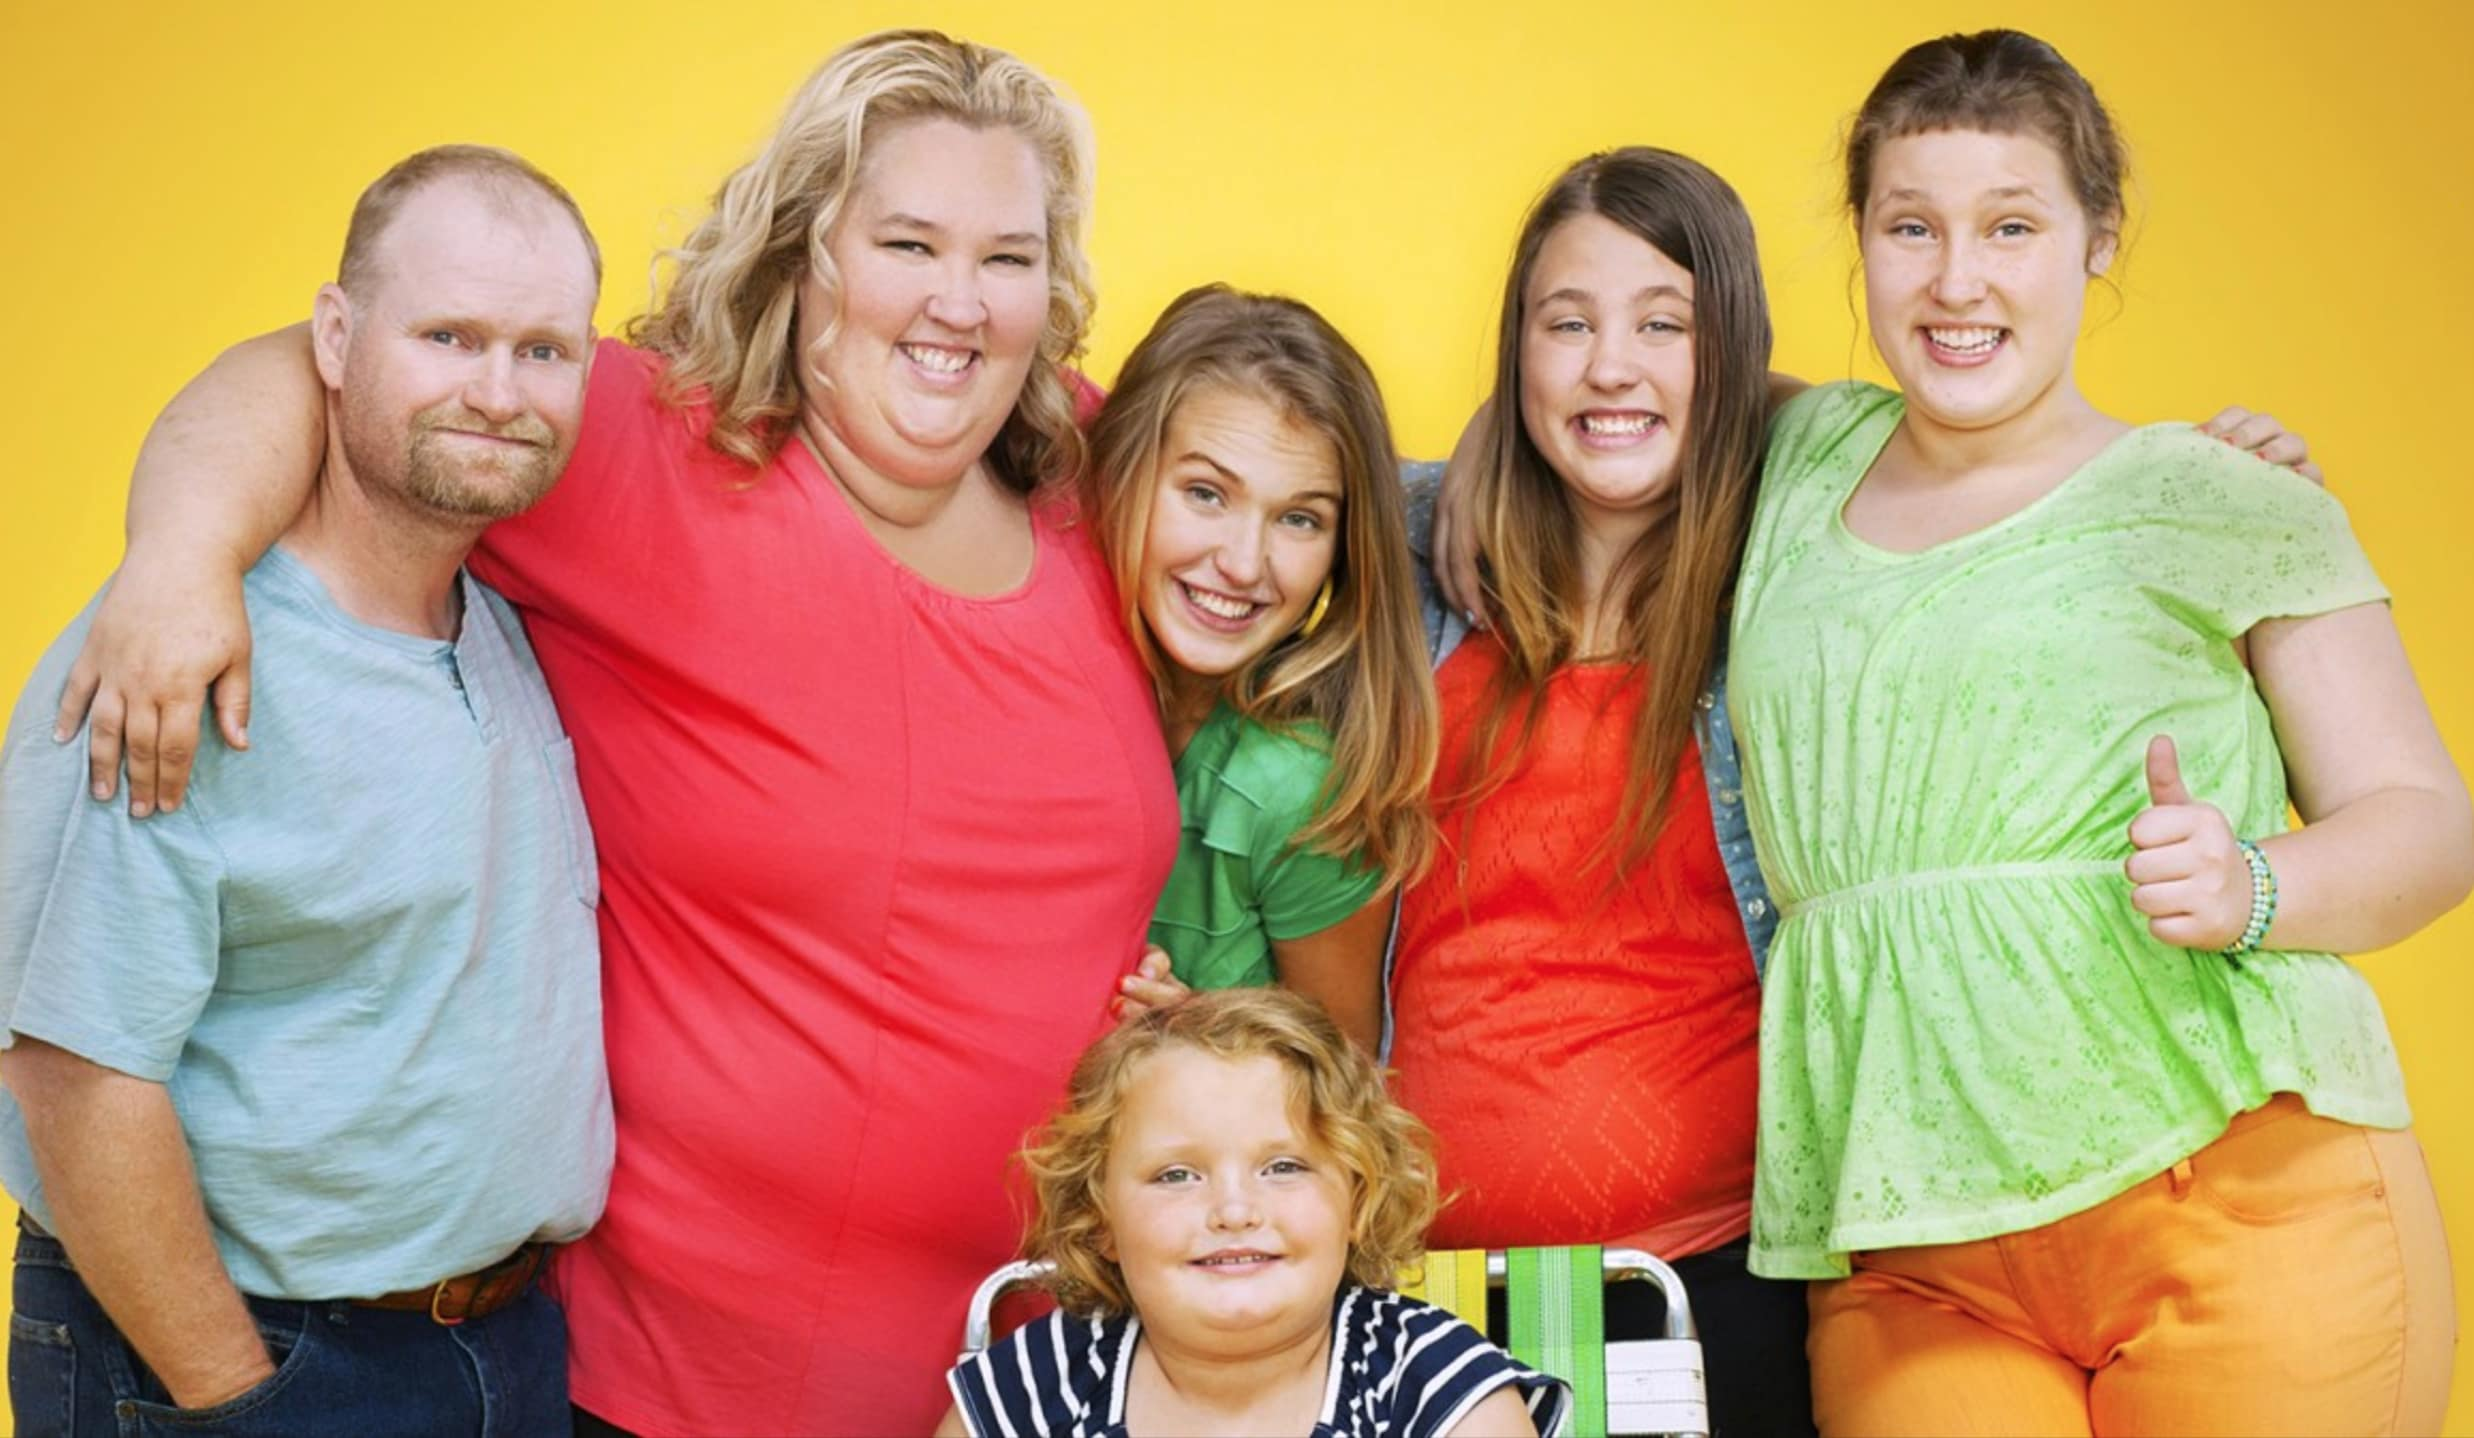 Here Comes Honey Boo Boo Cast The Hollywood Gossip